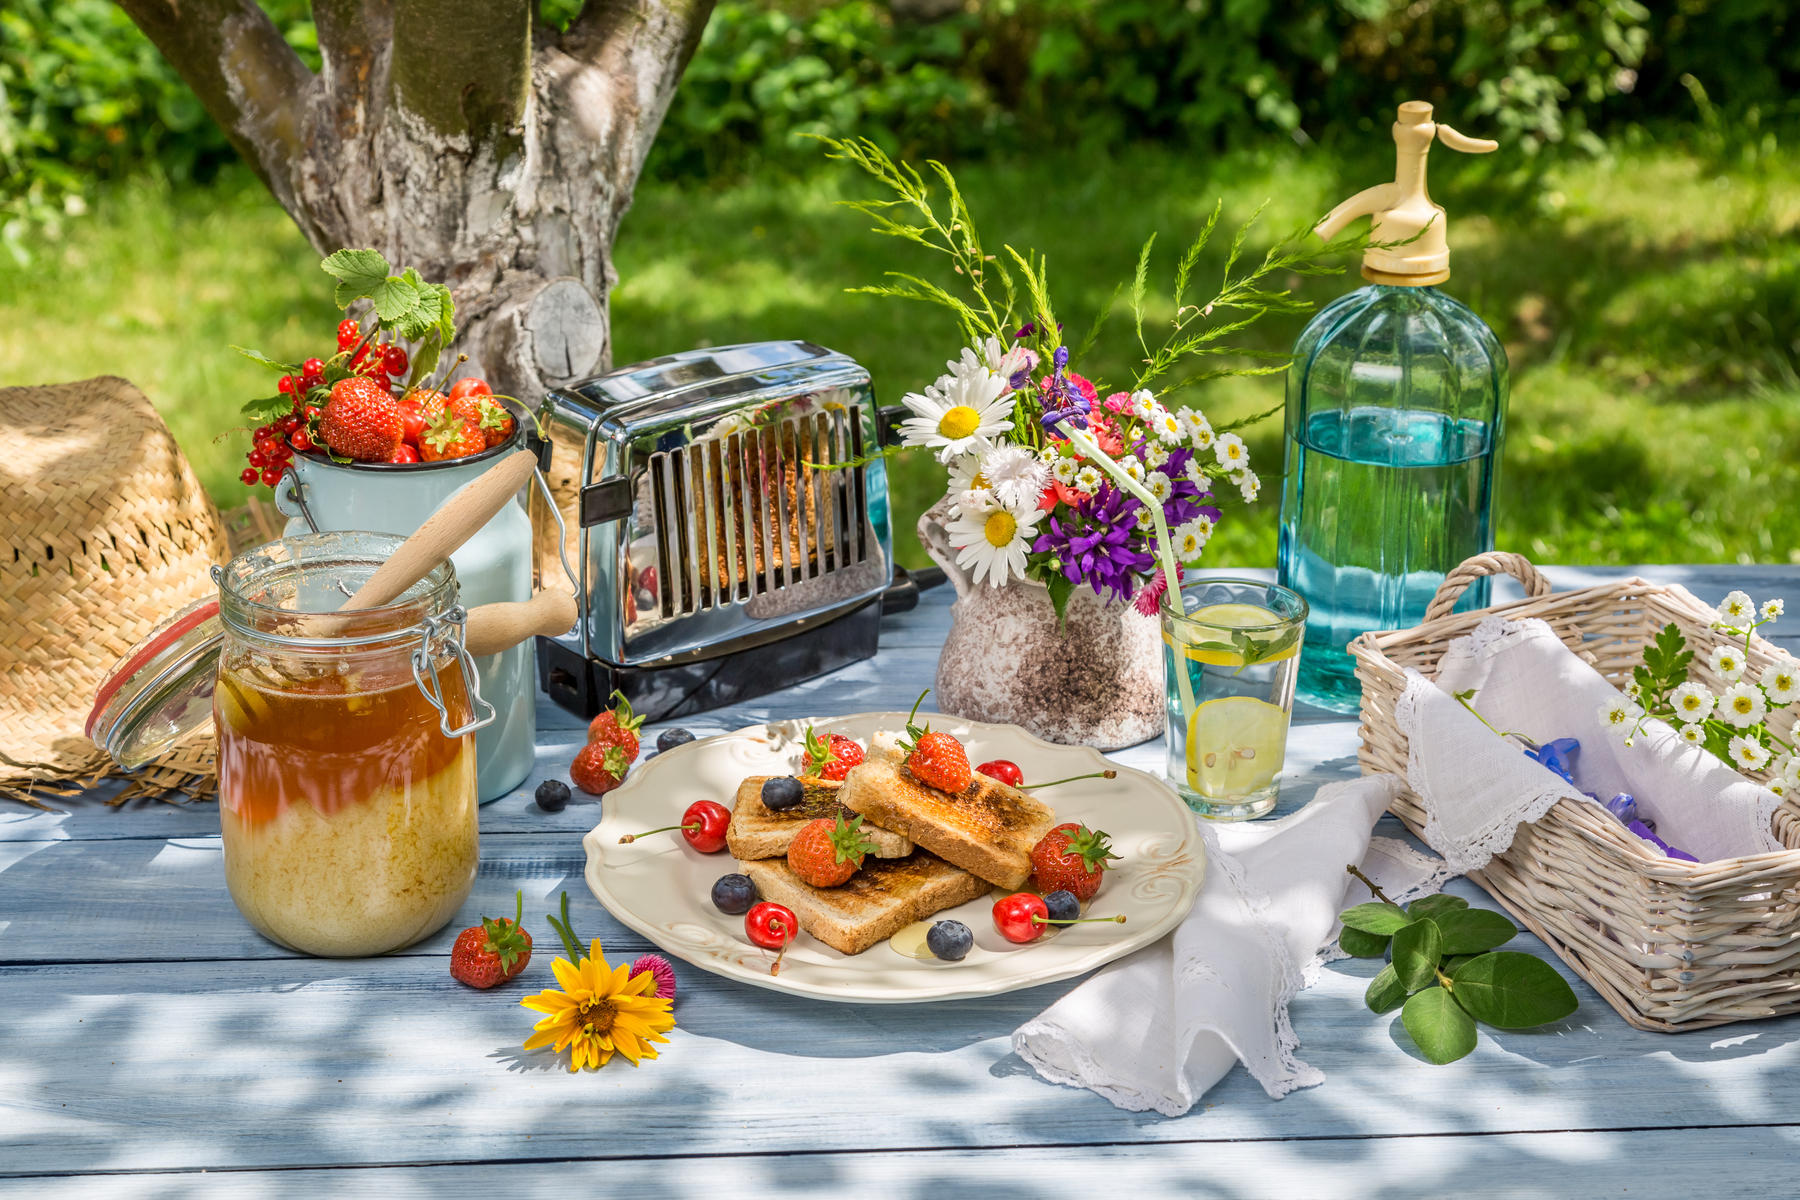 fruit and toast outside